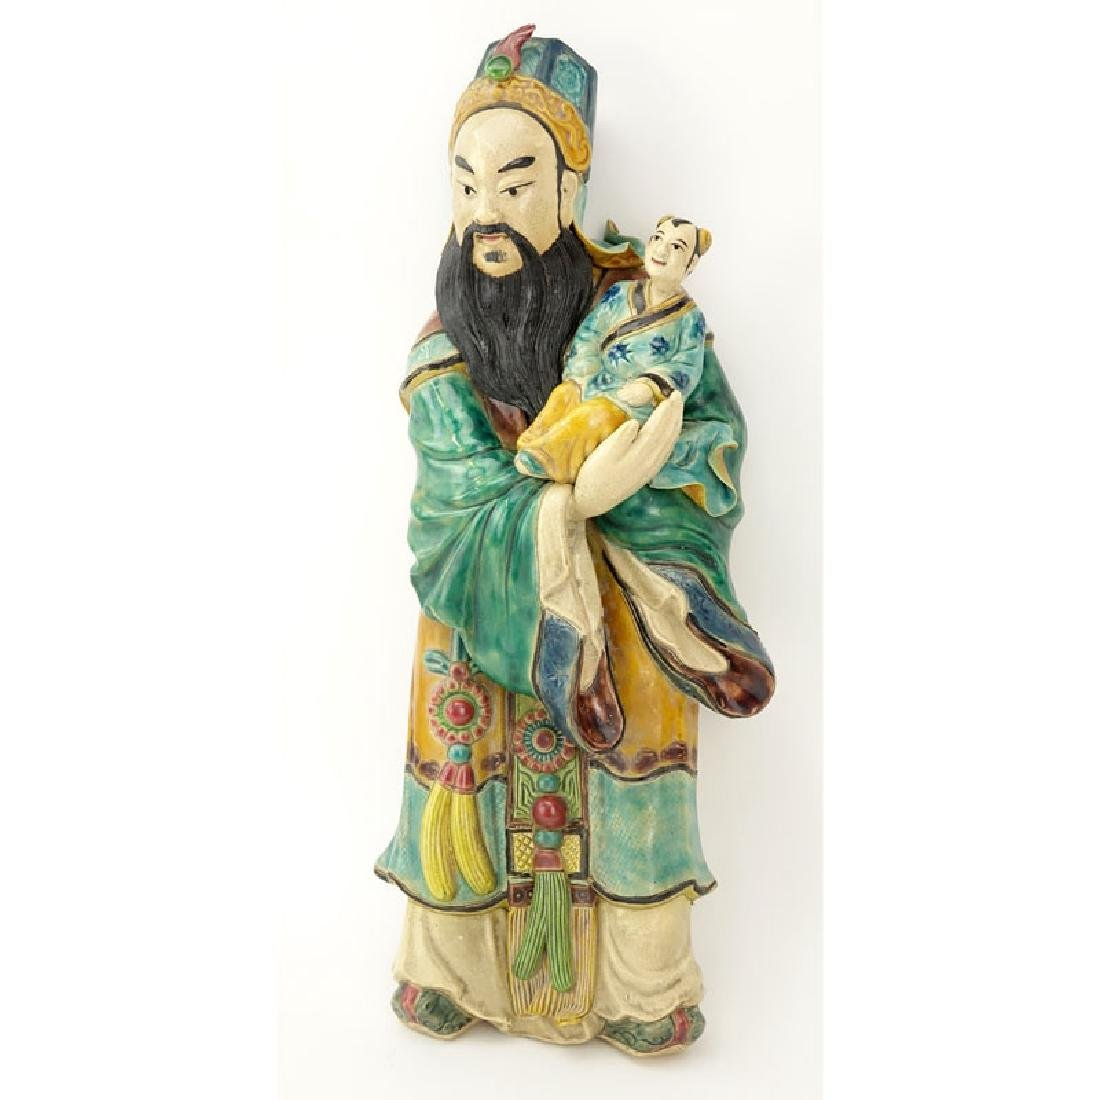 Chinese Polychrome Glazed Pottery of a Deity with